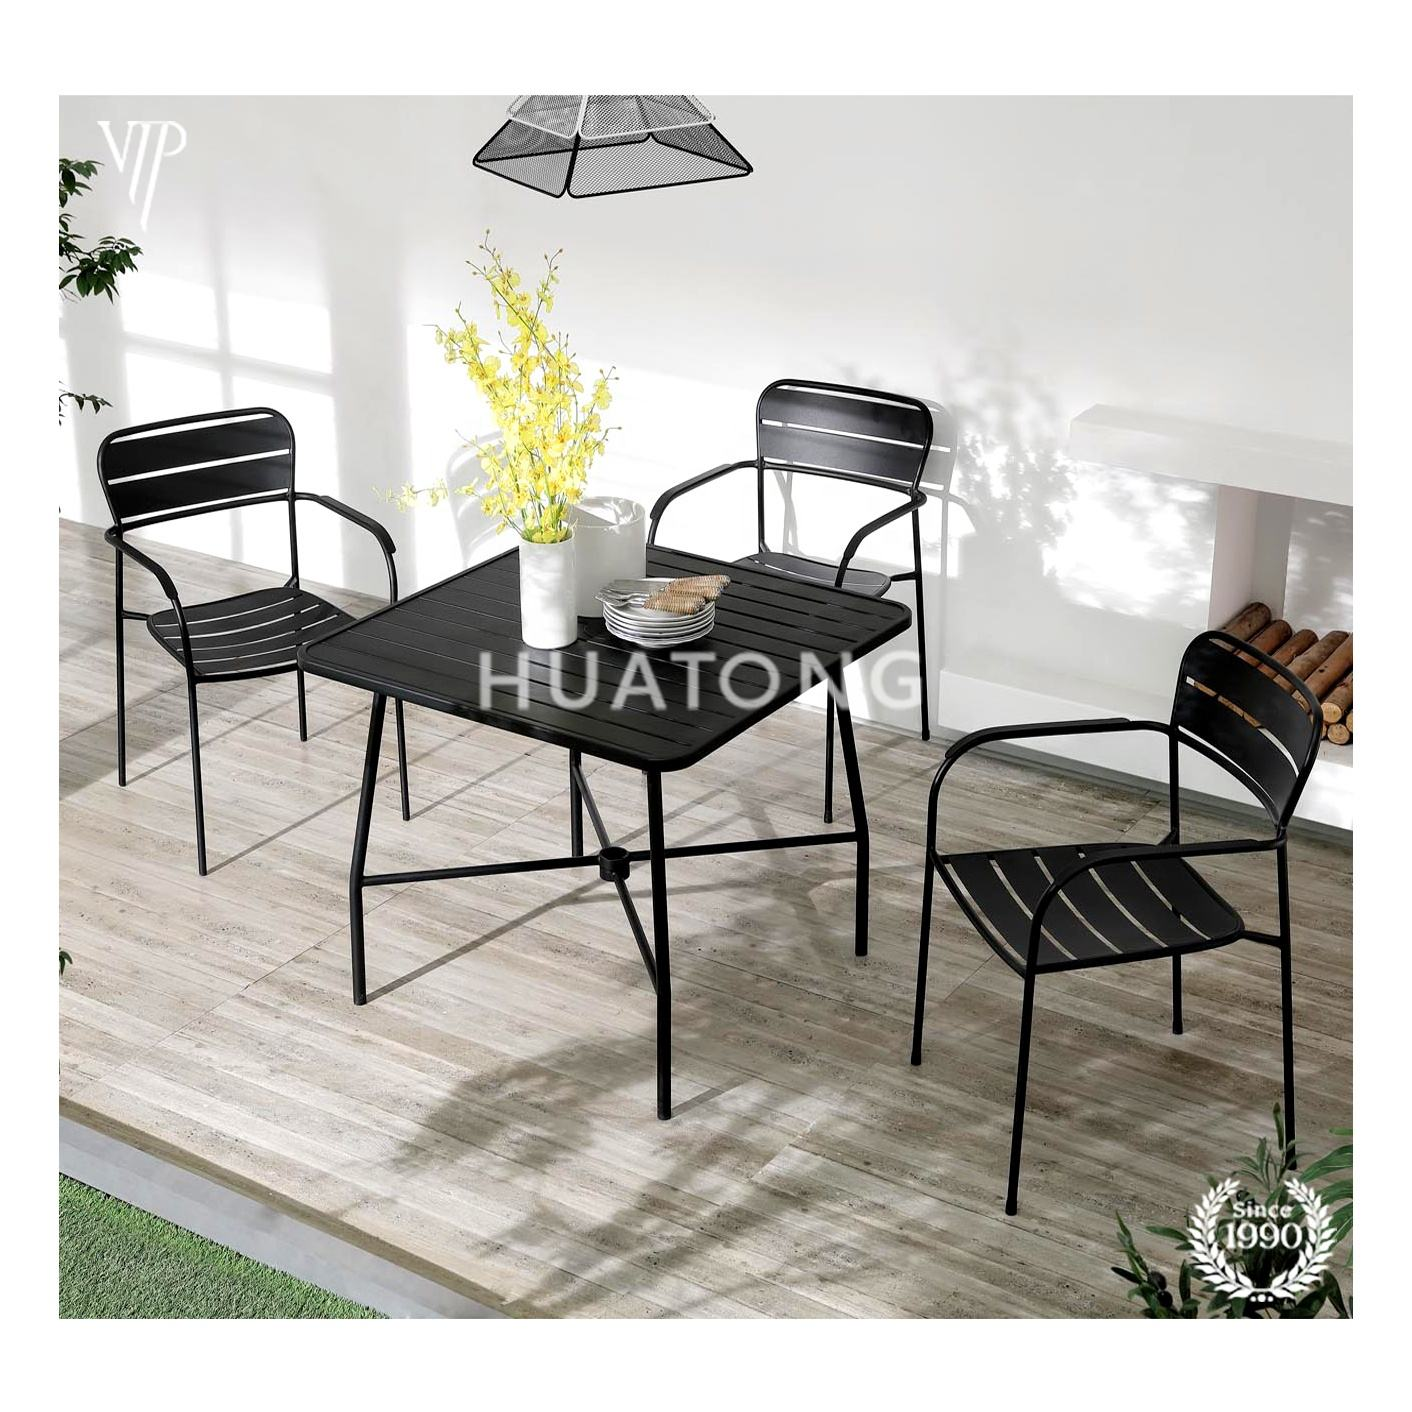 4 Pieces Patio Furniture Sets sectional Black steel Outdoor Funiture with umbrella